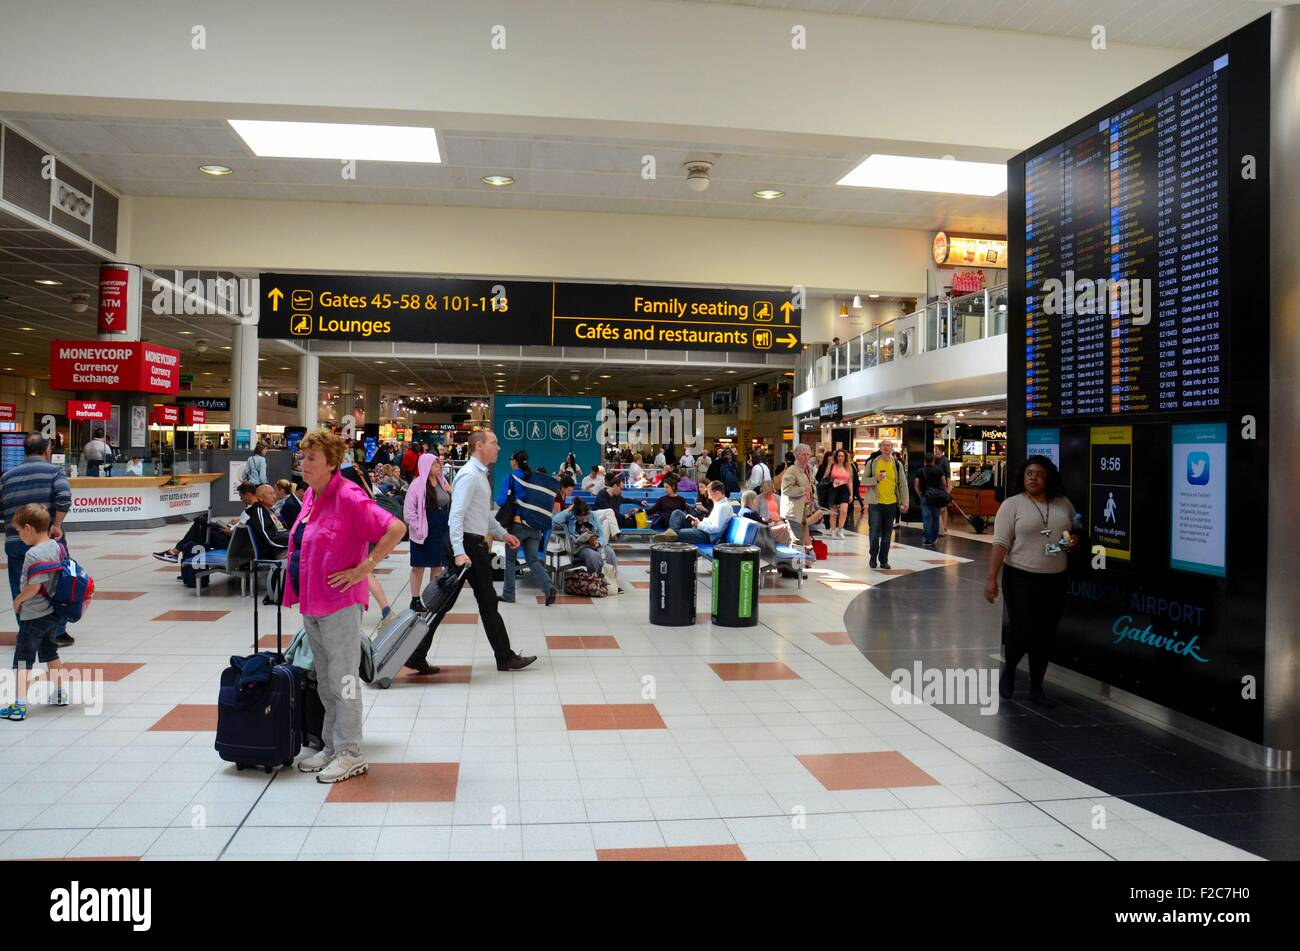 Travelers and people at England's London Gatwick Airport departure lounge with flight display - Stock Image